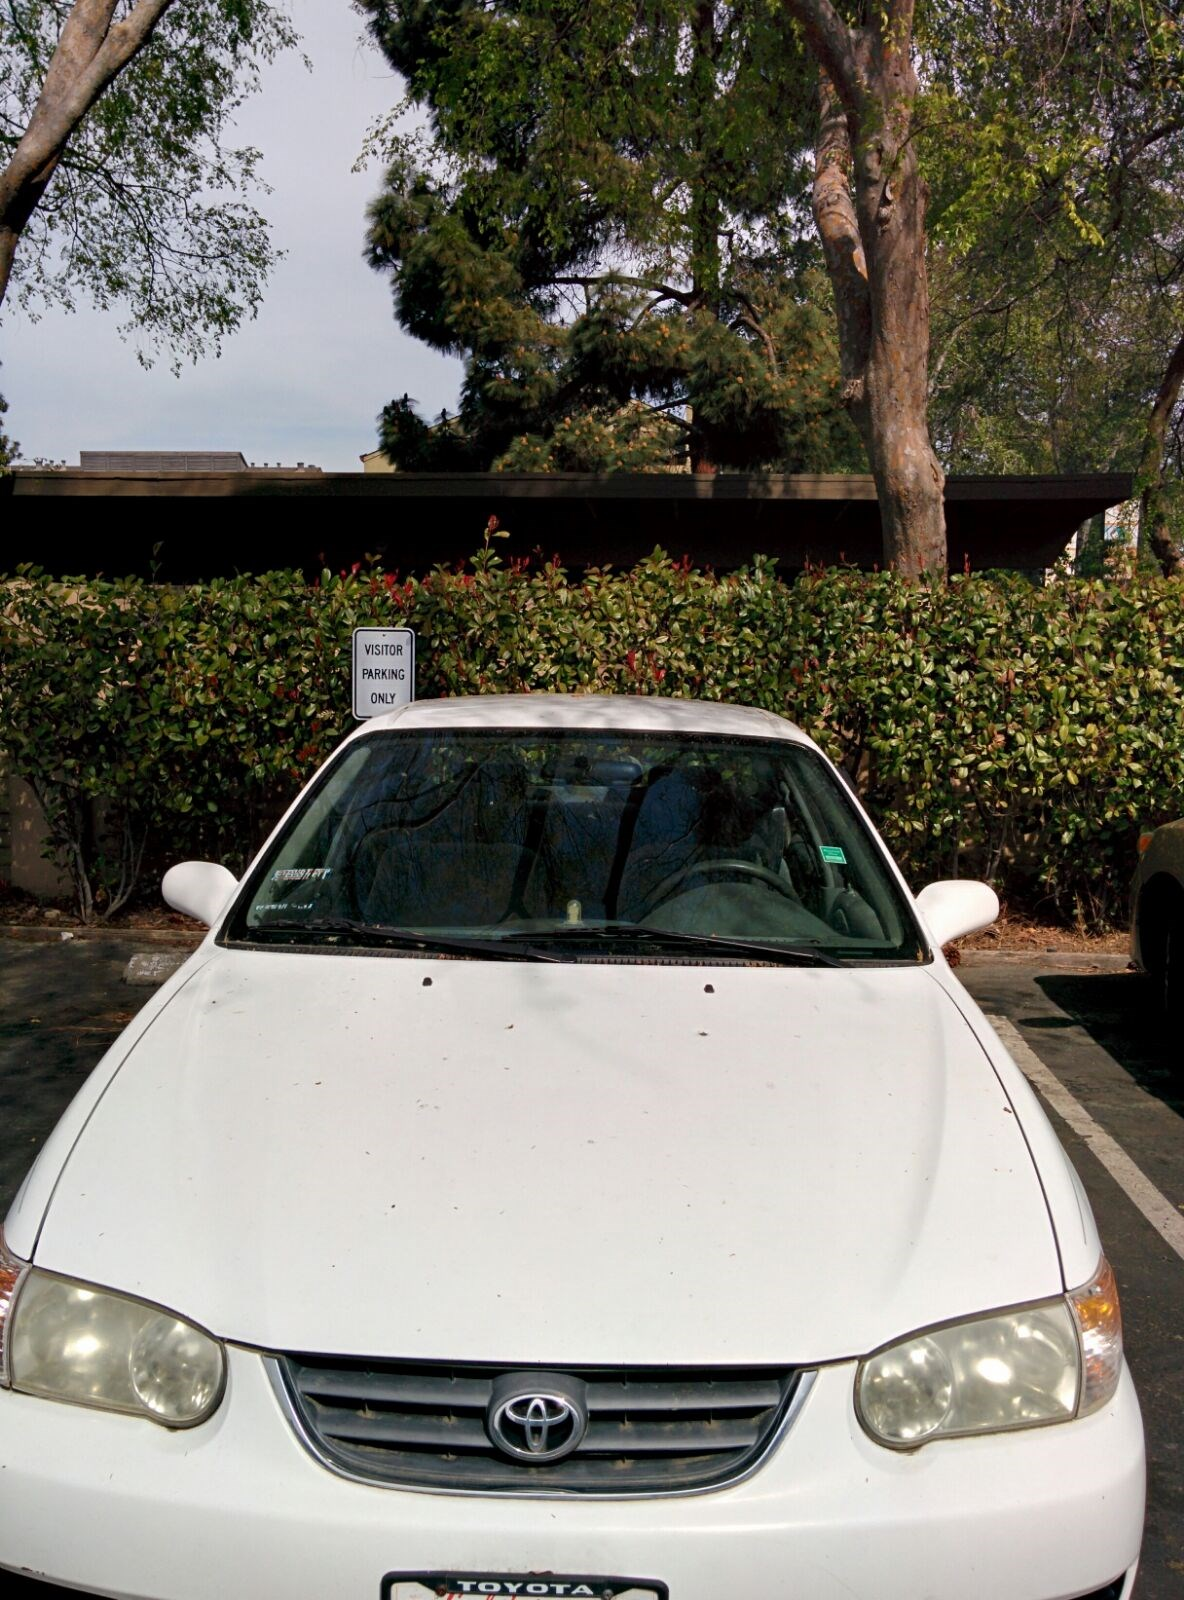 Toyota White Corolla Le 2001 Car Is For Sale Used Hatchback Make Model Year